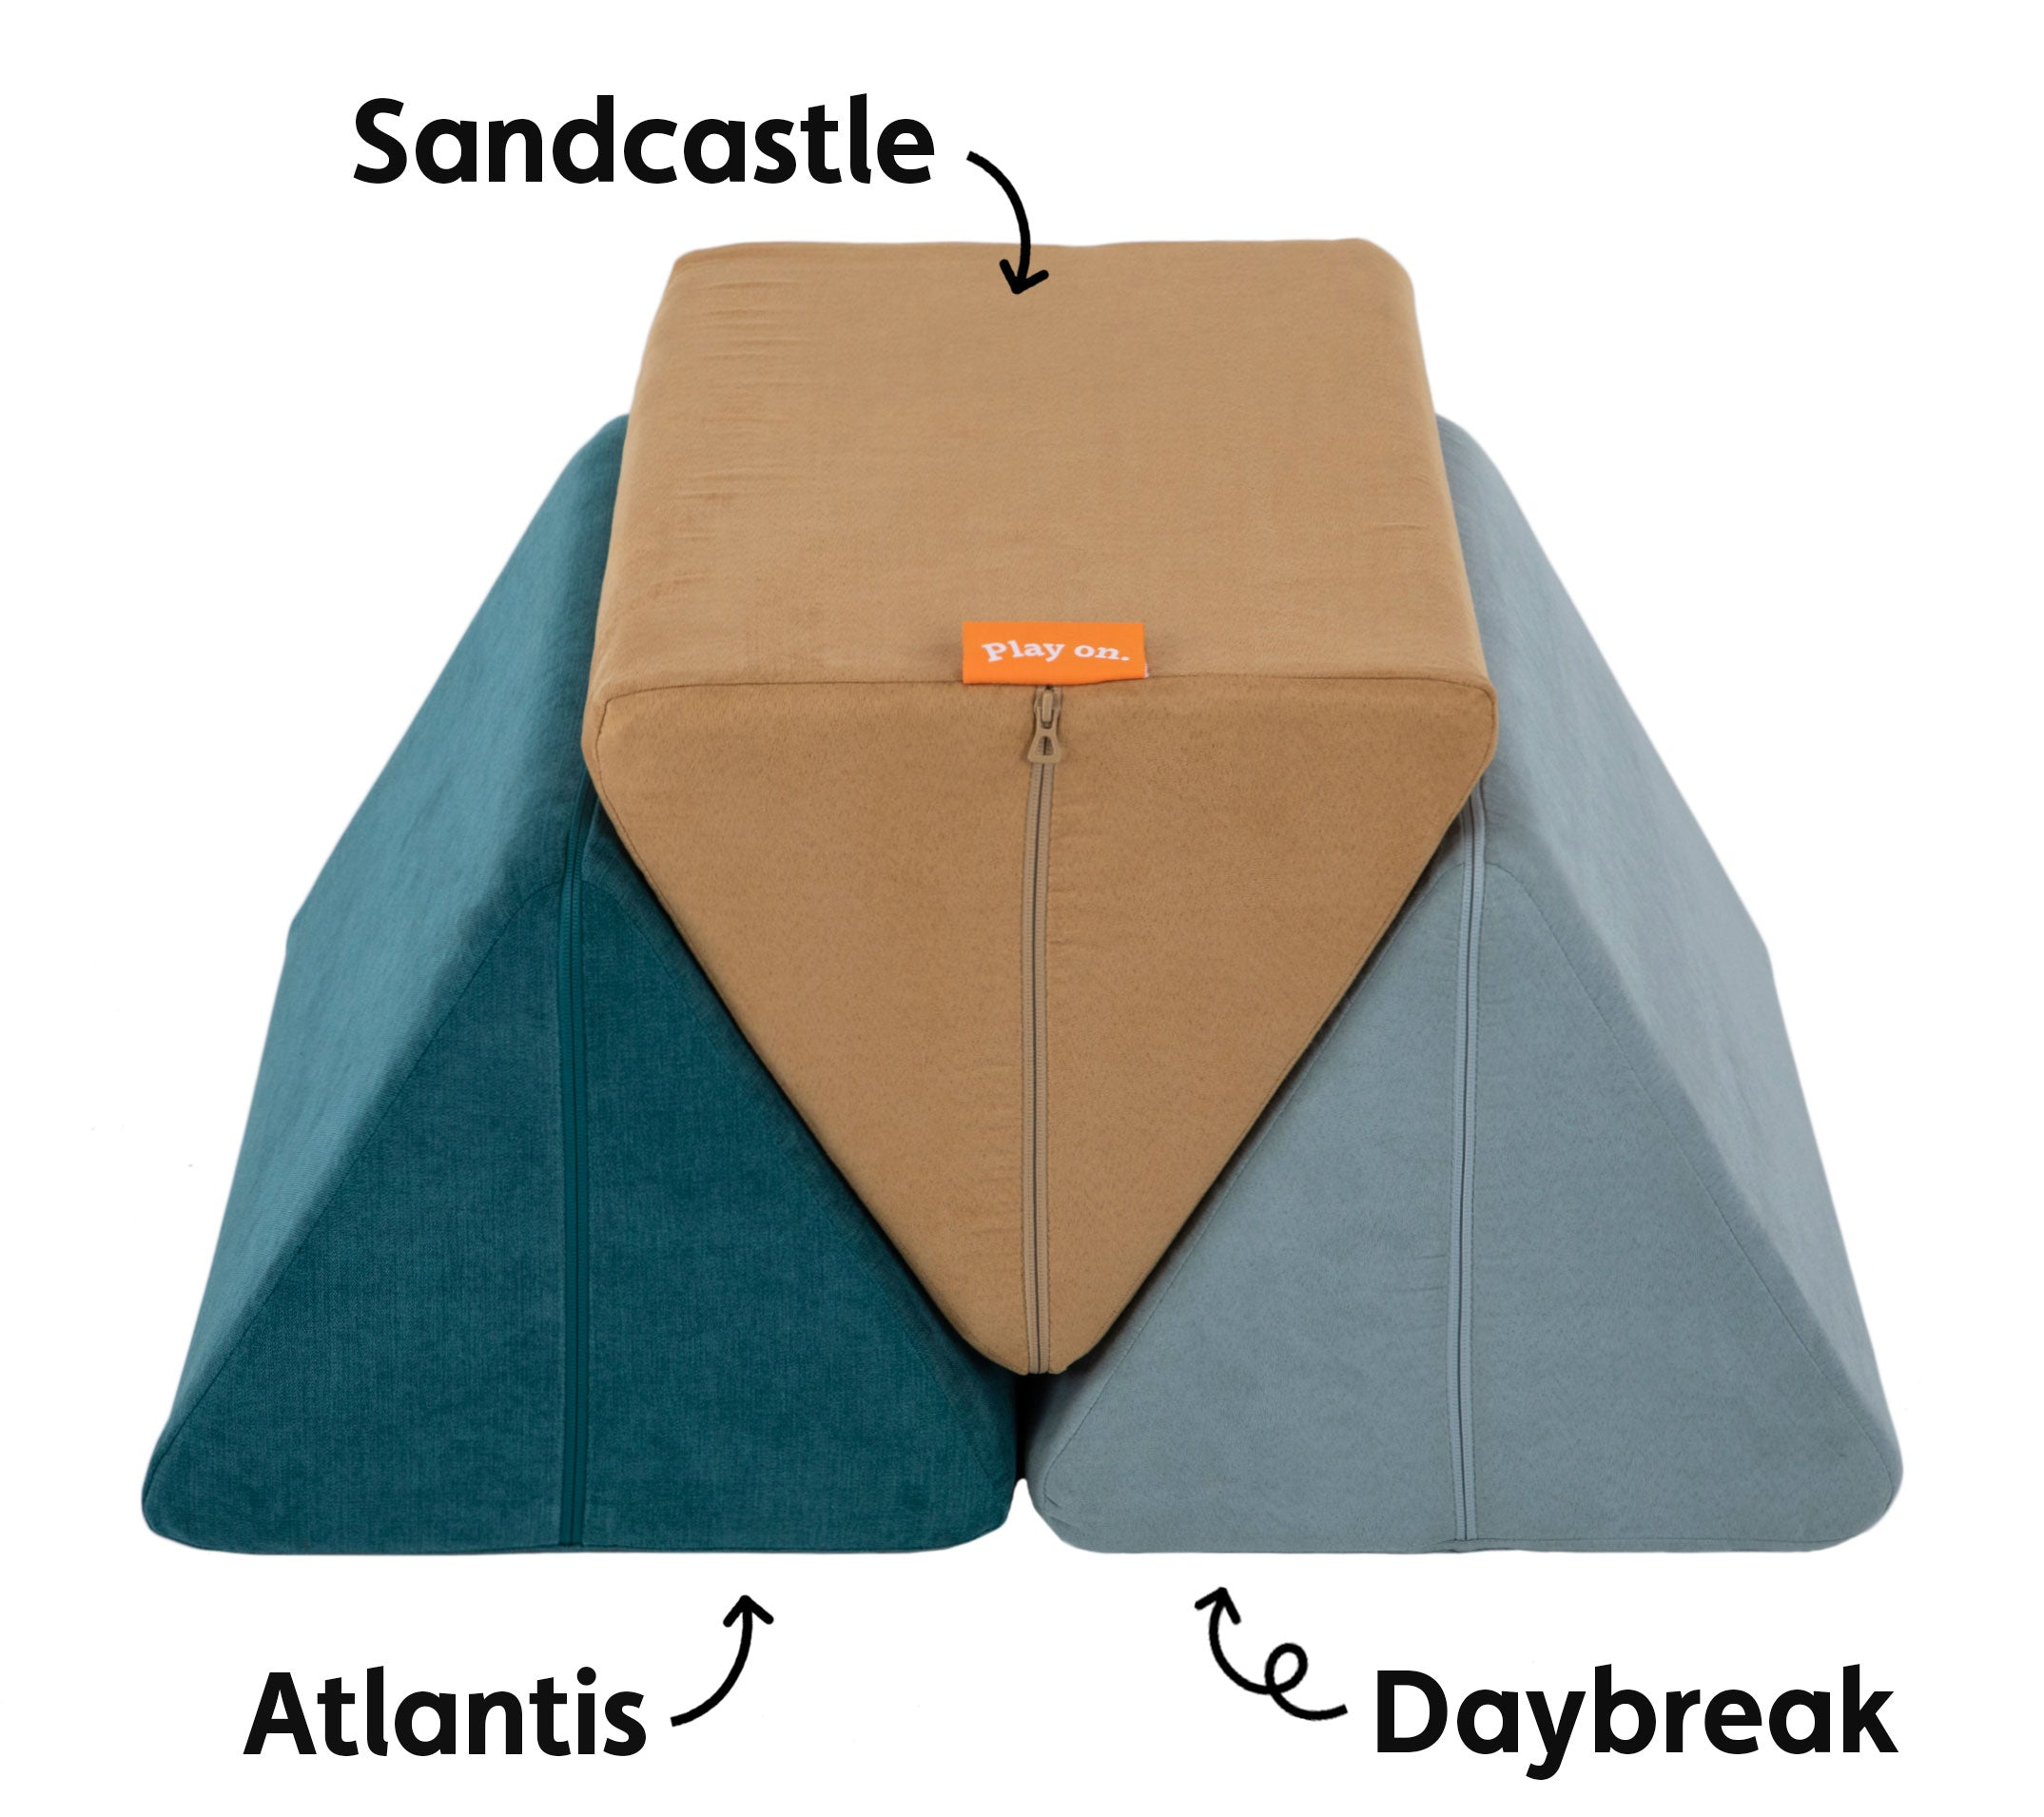 Atlantis, Sandcastle, and Daybreak Nugget pillows stacked side by side